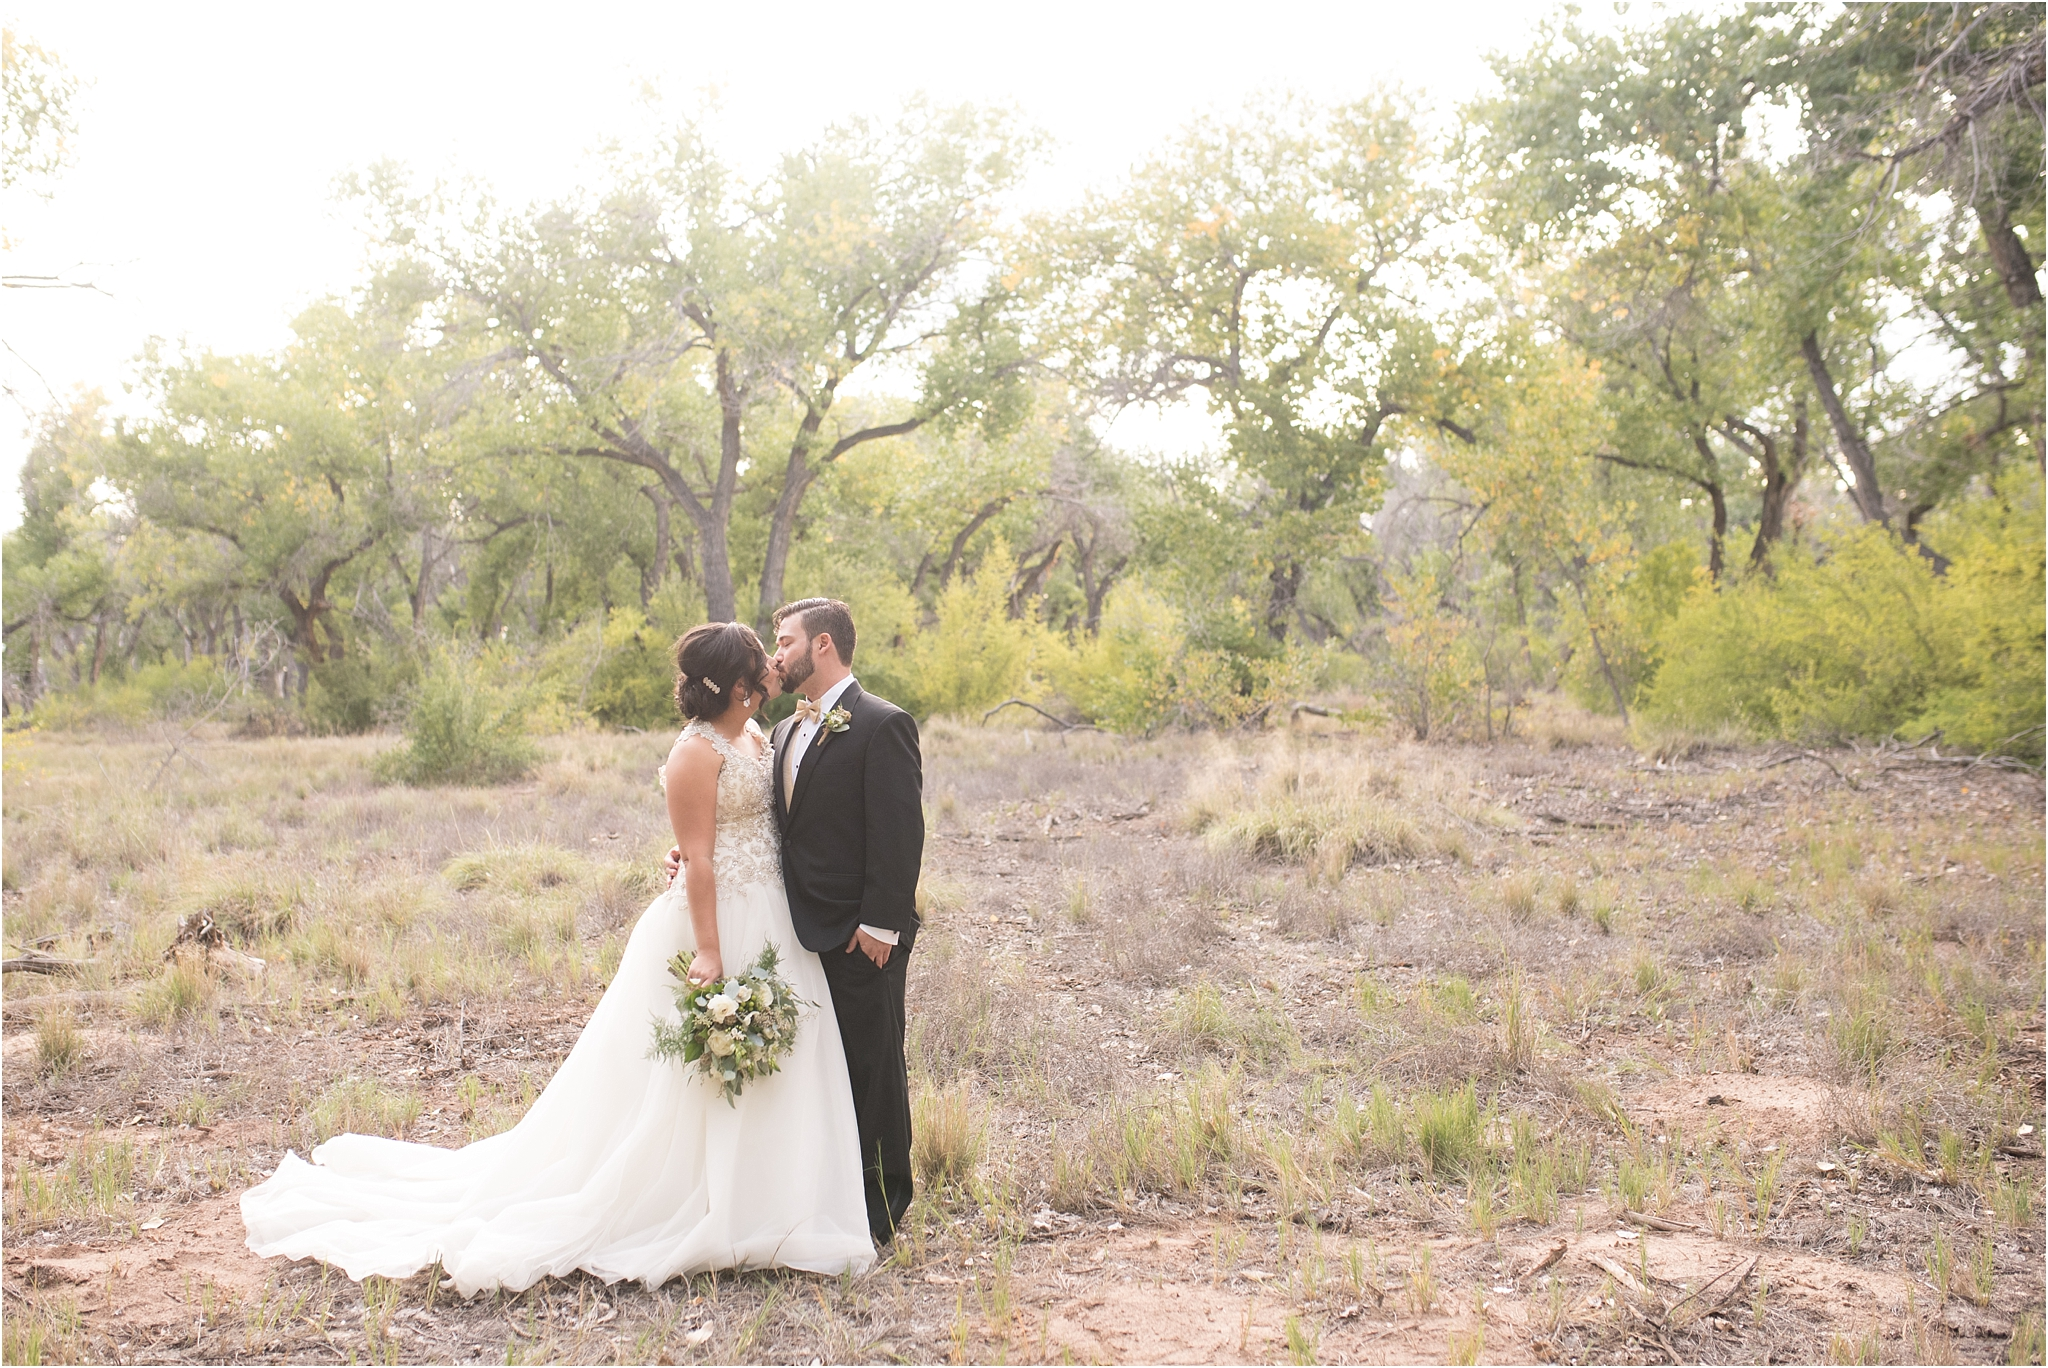 kayla kitts photography - albuquerque wedding photographer - new mexico wedding photographer - desination wedding photographer - cabo wedding photographer_0059.jpg